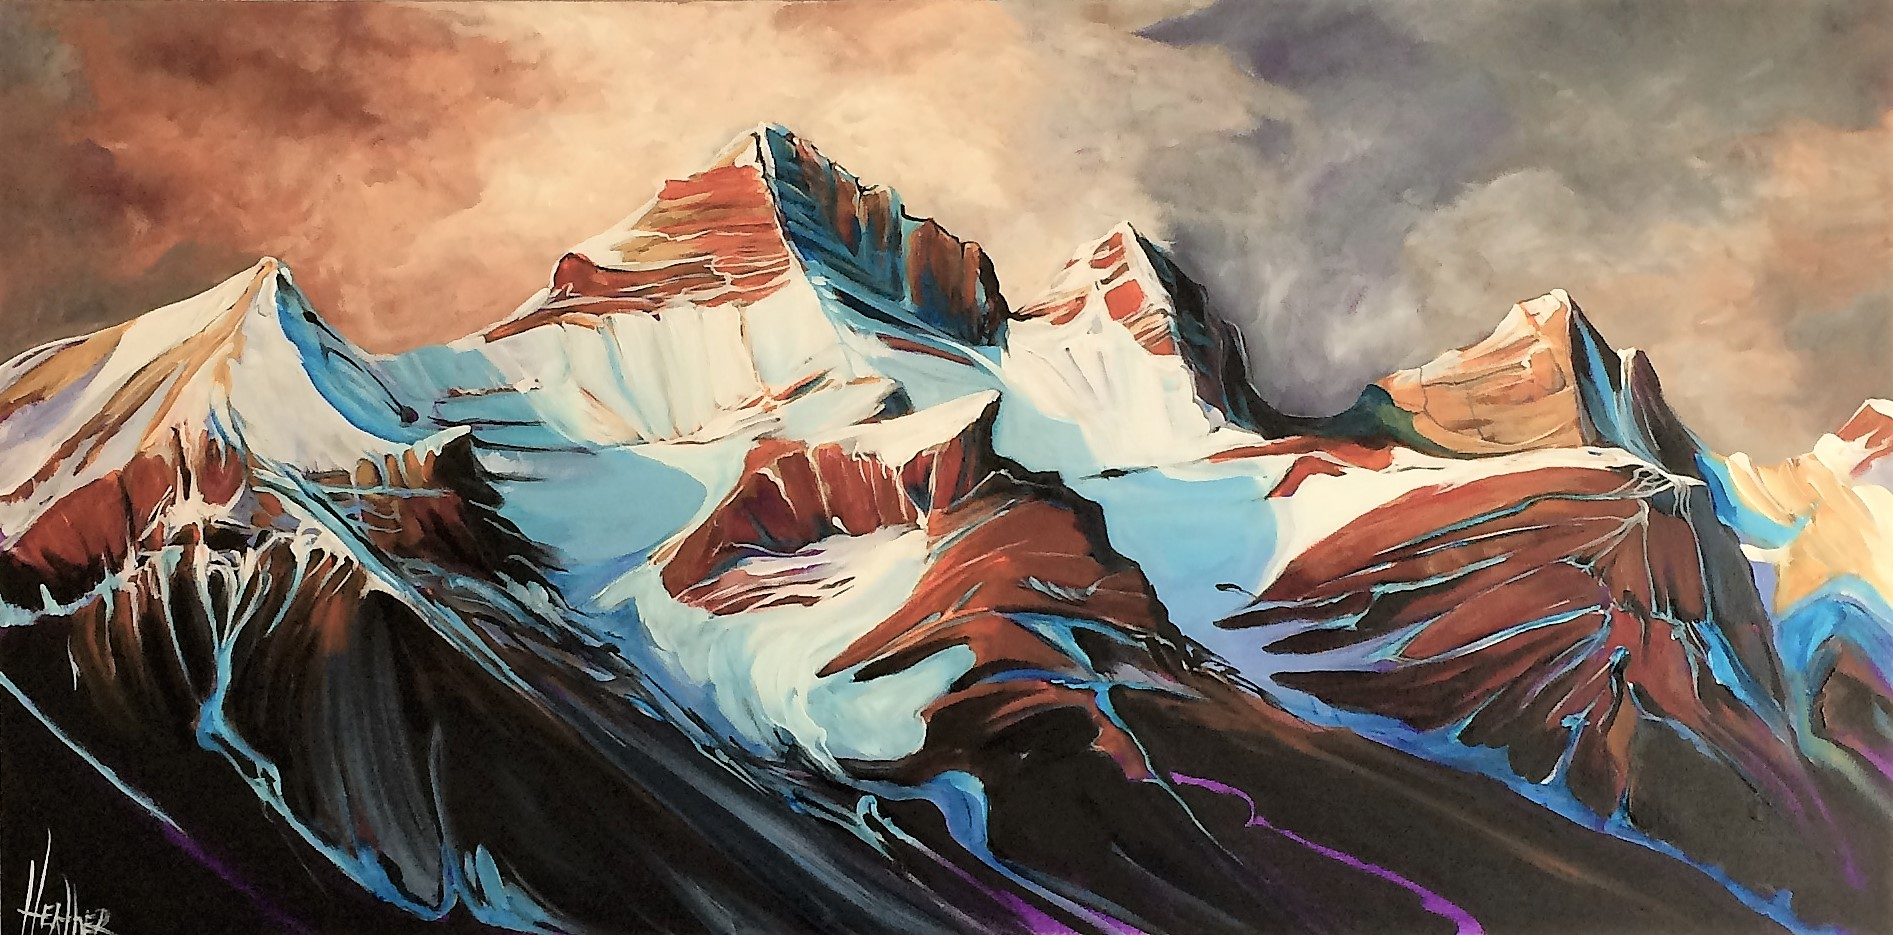 Banff Thunder 24 x 48 SOLD